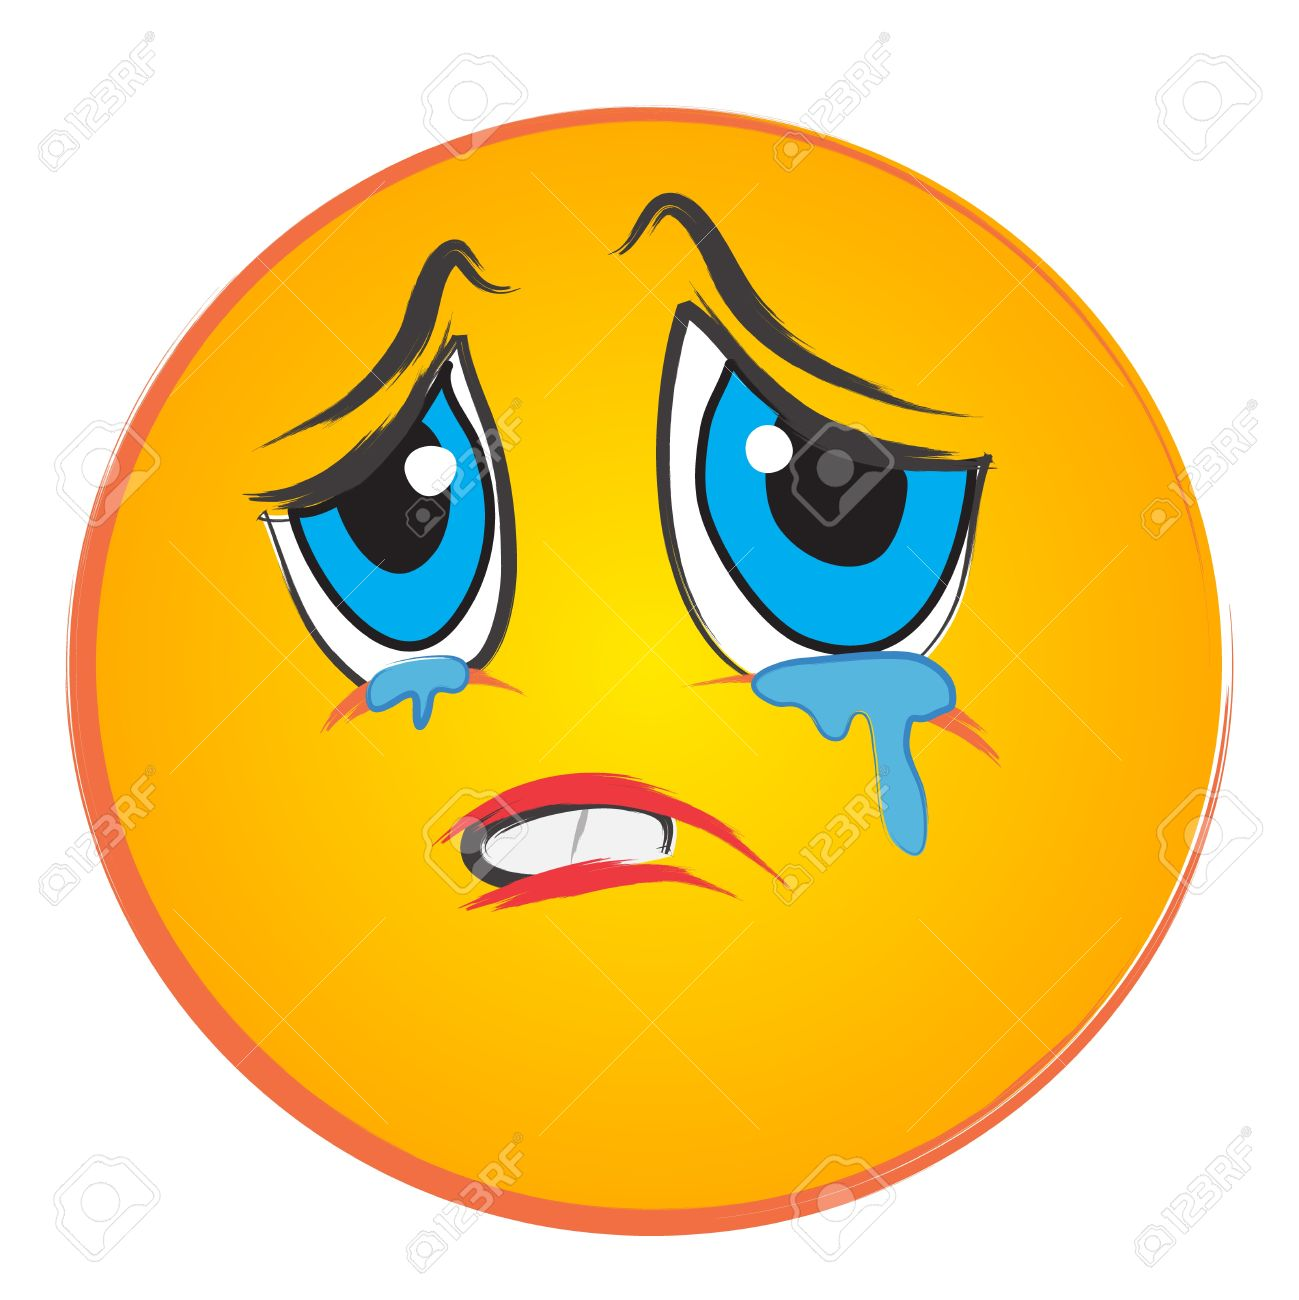 1299x1300 Clip Art Sad Face Many Interesting Cliparts